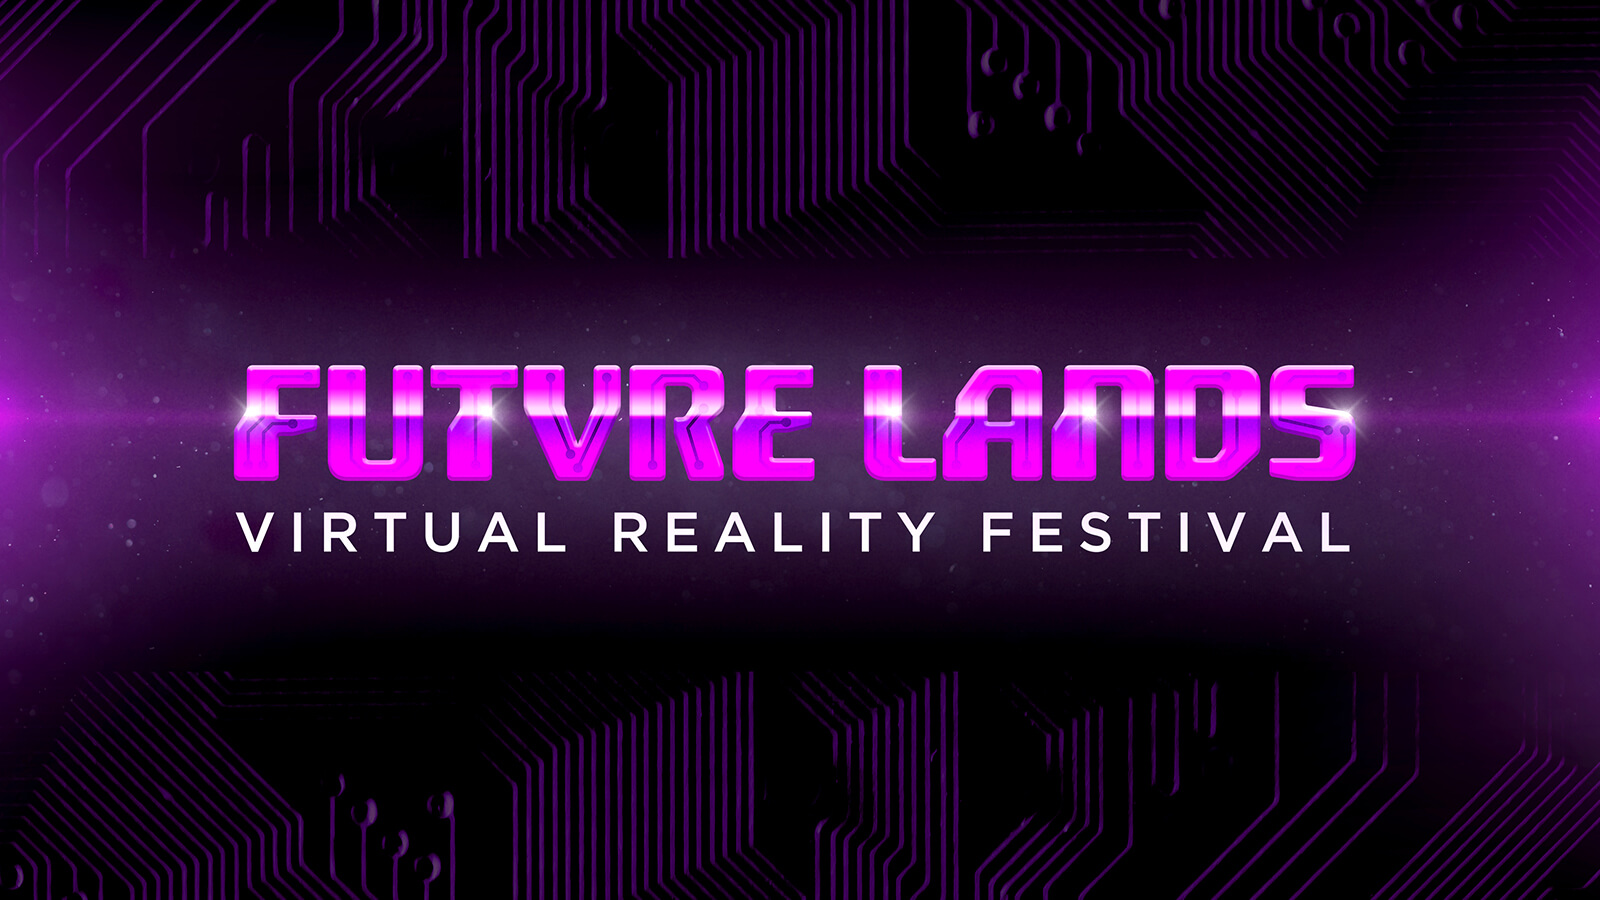 The First Virtual Reality Festival Completely in VR